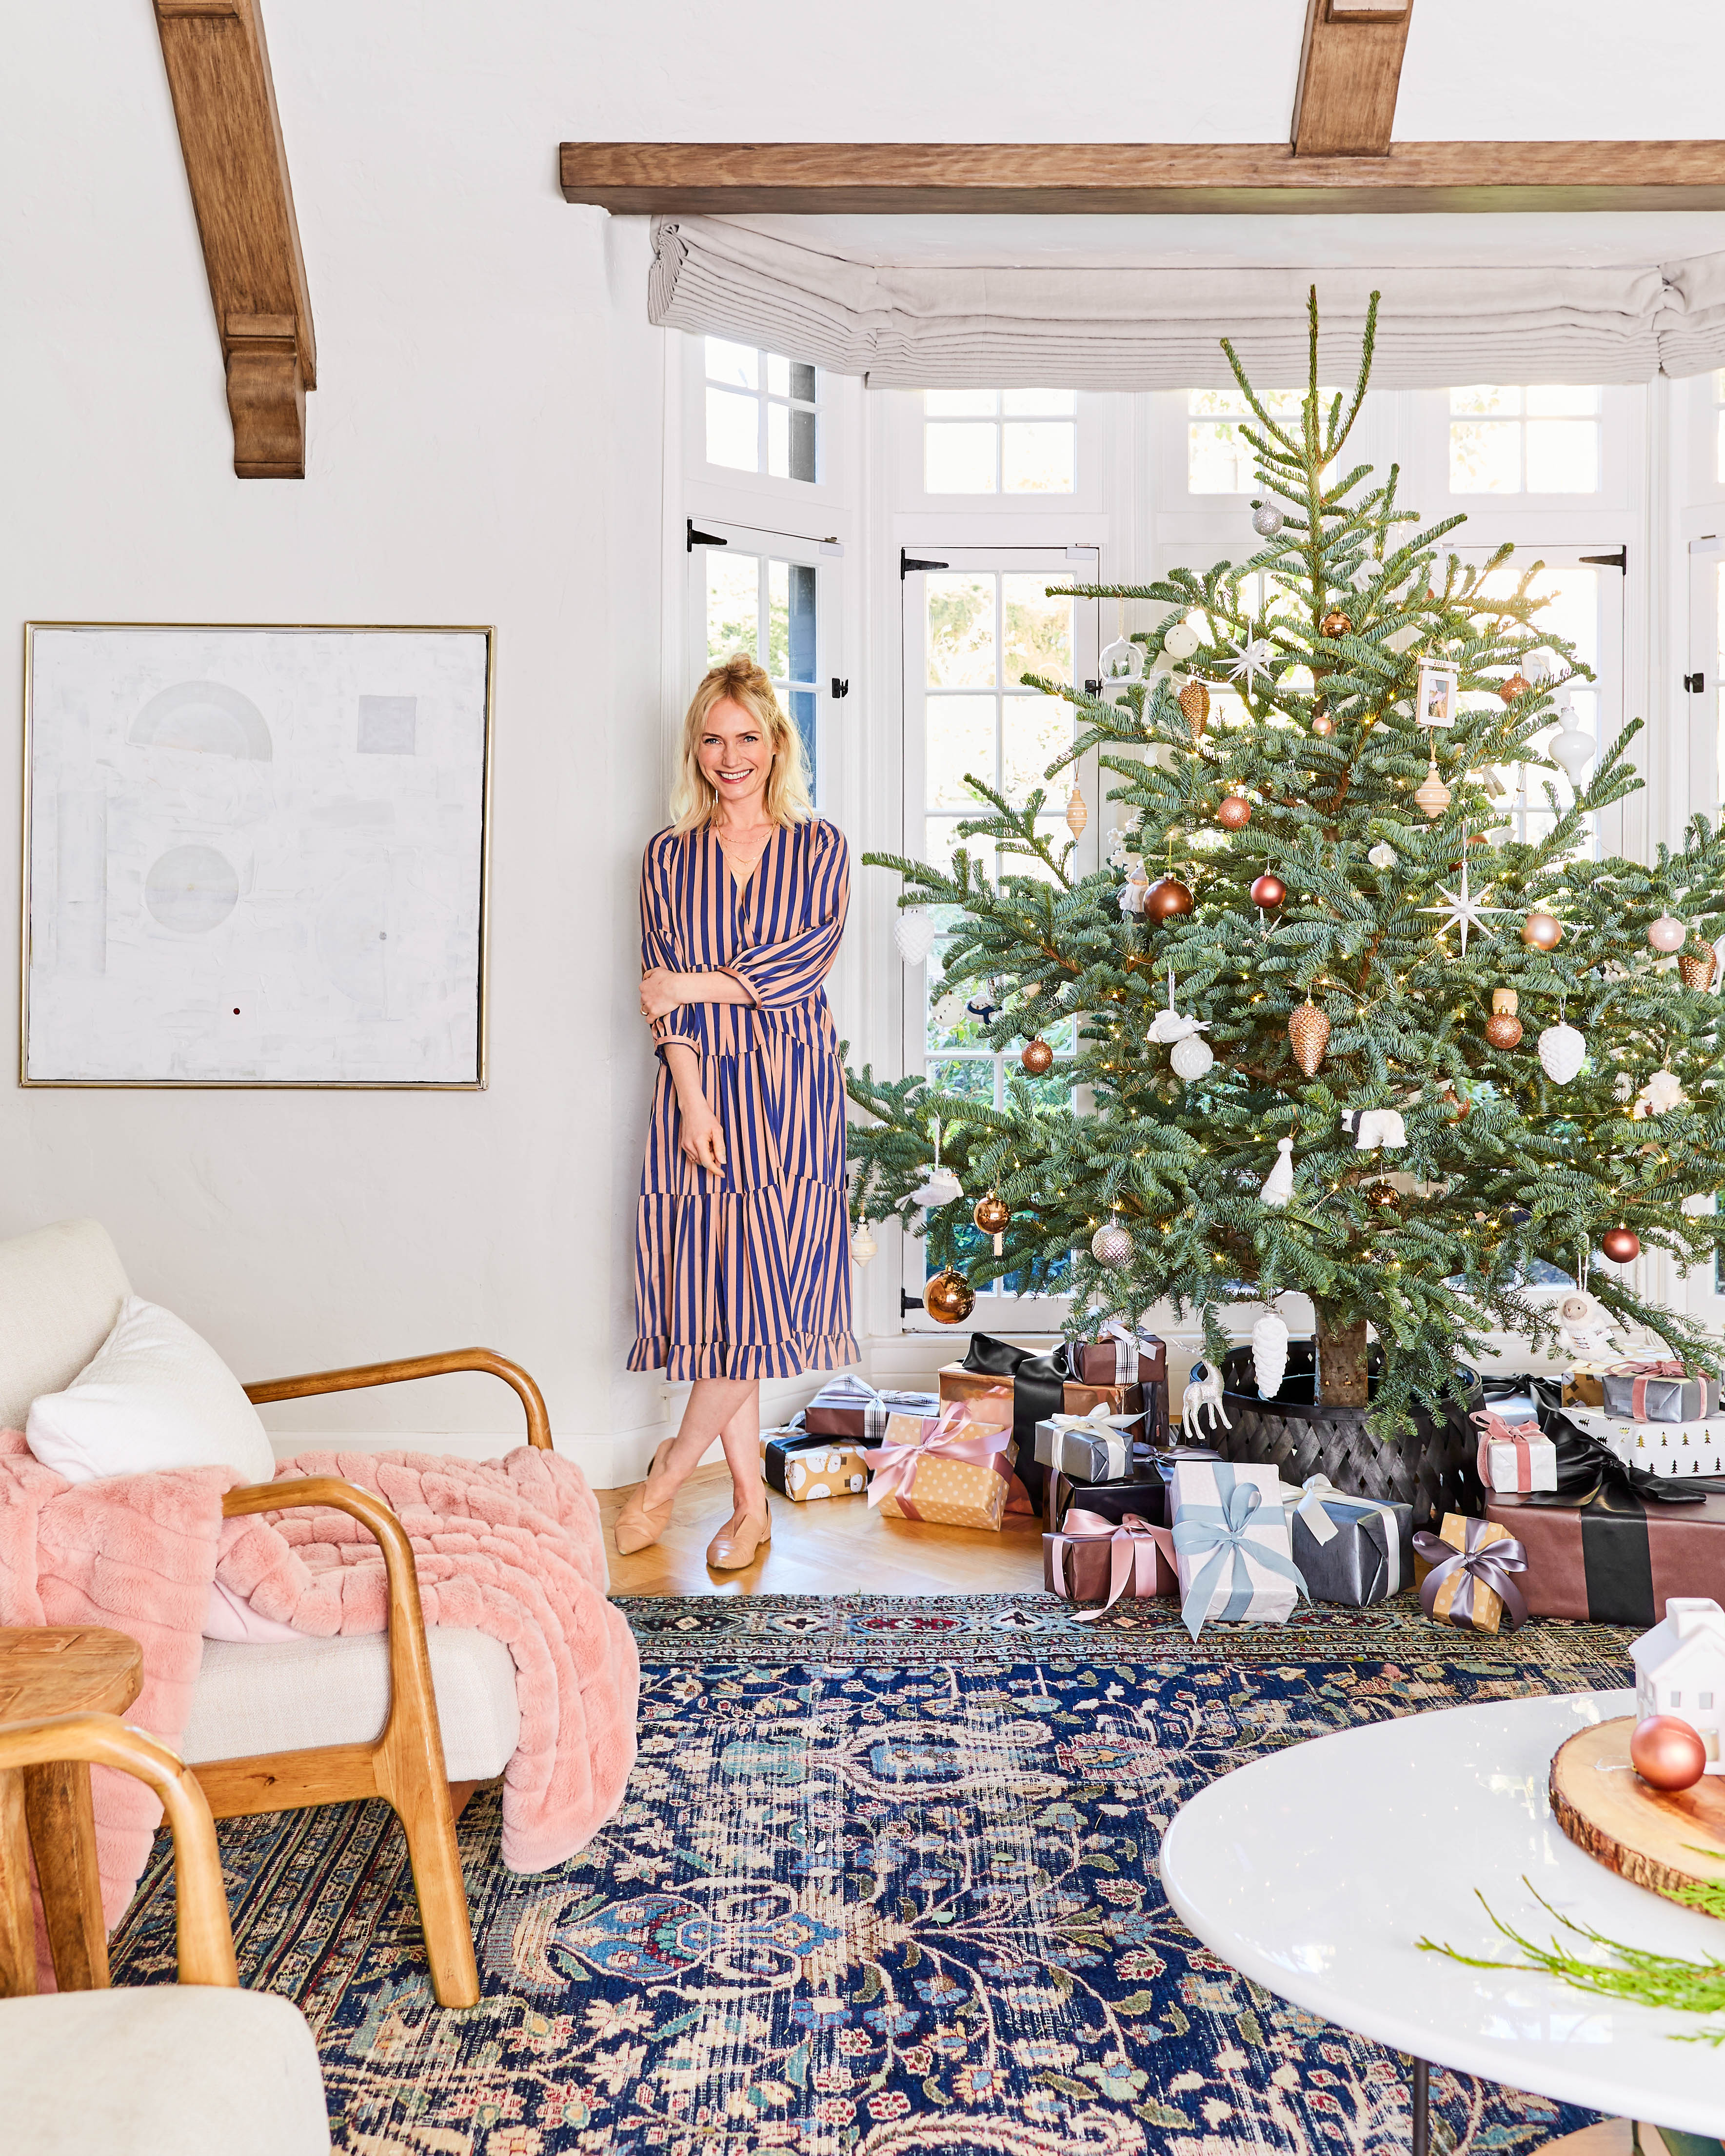 Exclusive: Designer Emily Henderson Reveals Her Gorgeous Neutral Holiday Decor